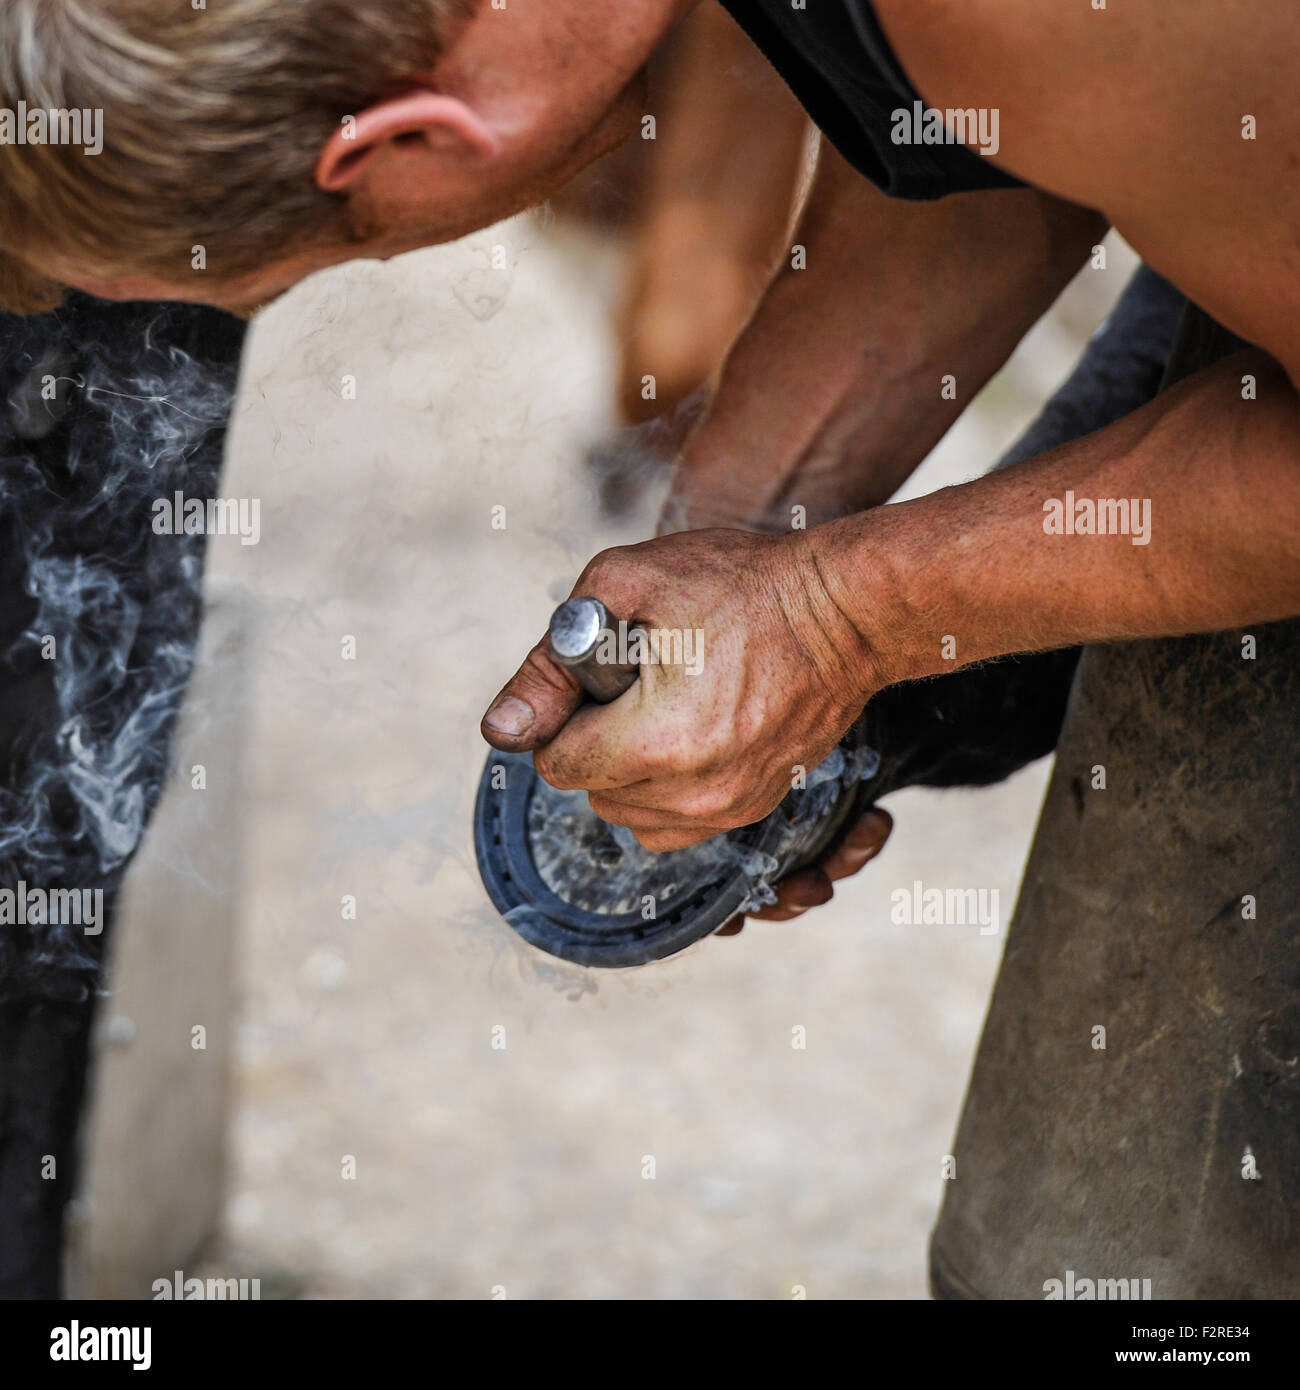 A farrier hard at work re shoeing horses - Stock Image